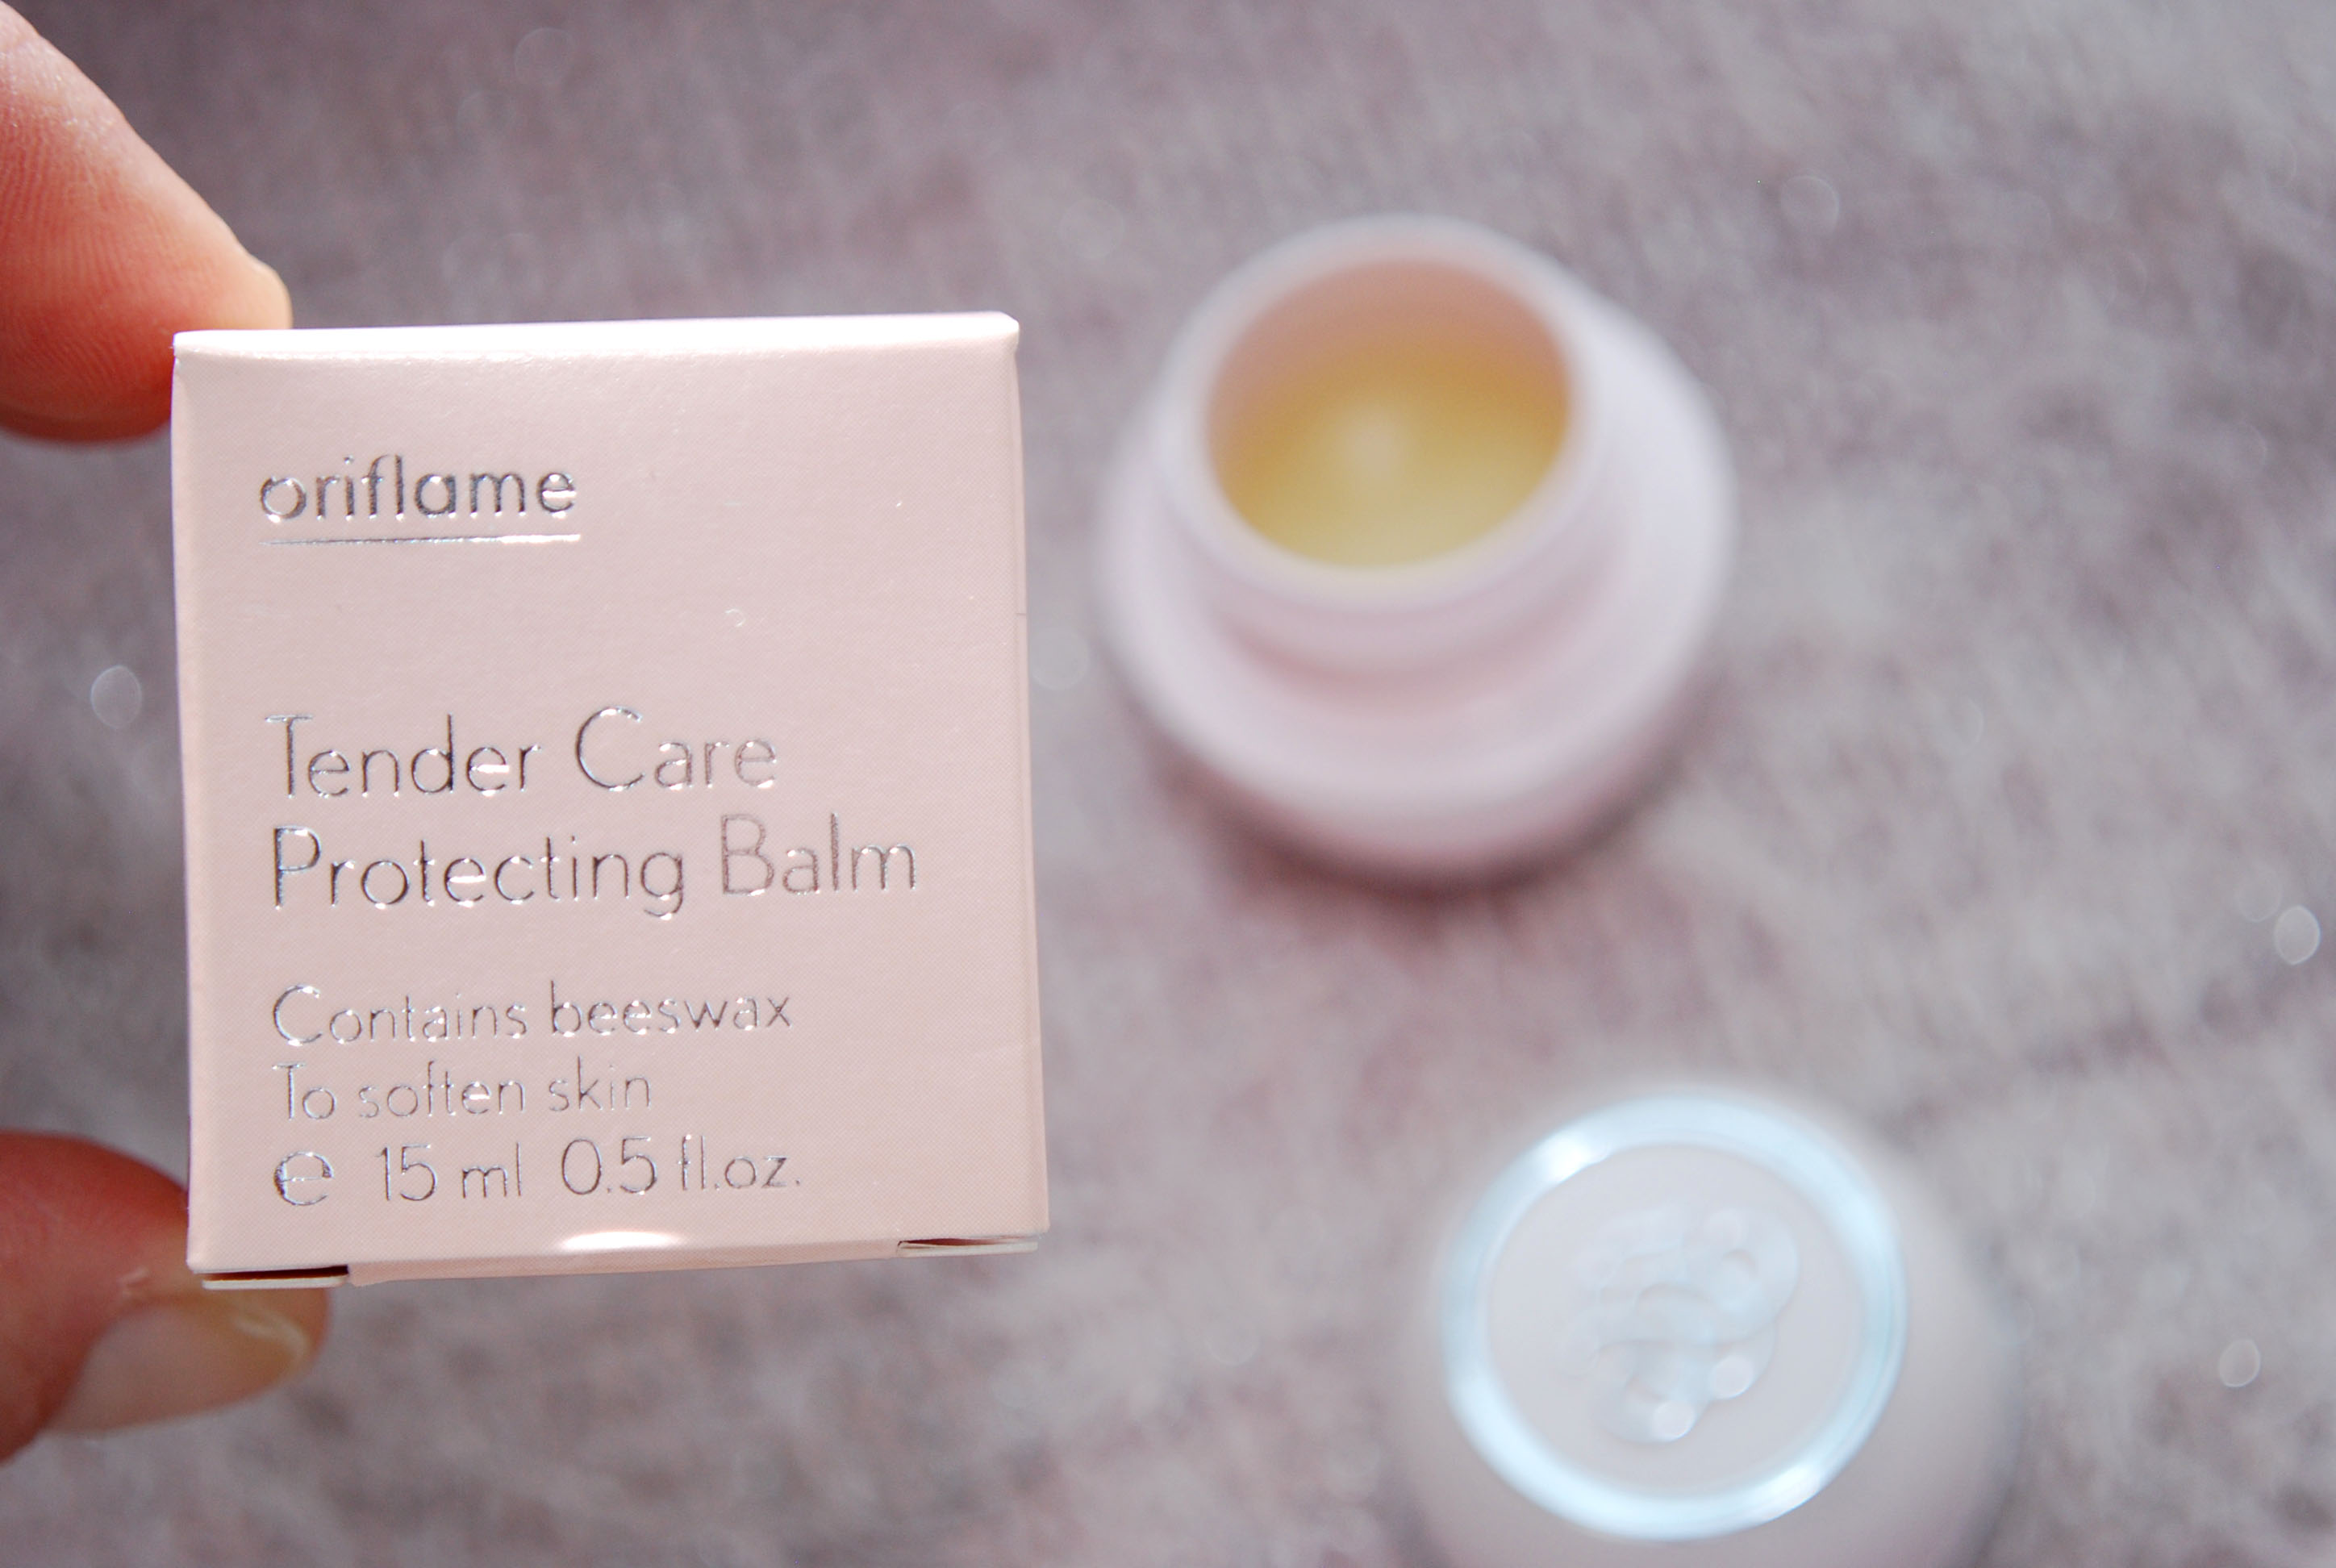 tender care protecting balm oriflame review ervaring wonderpotje